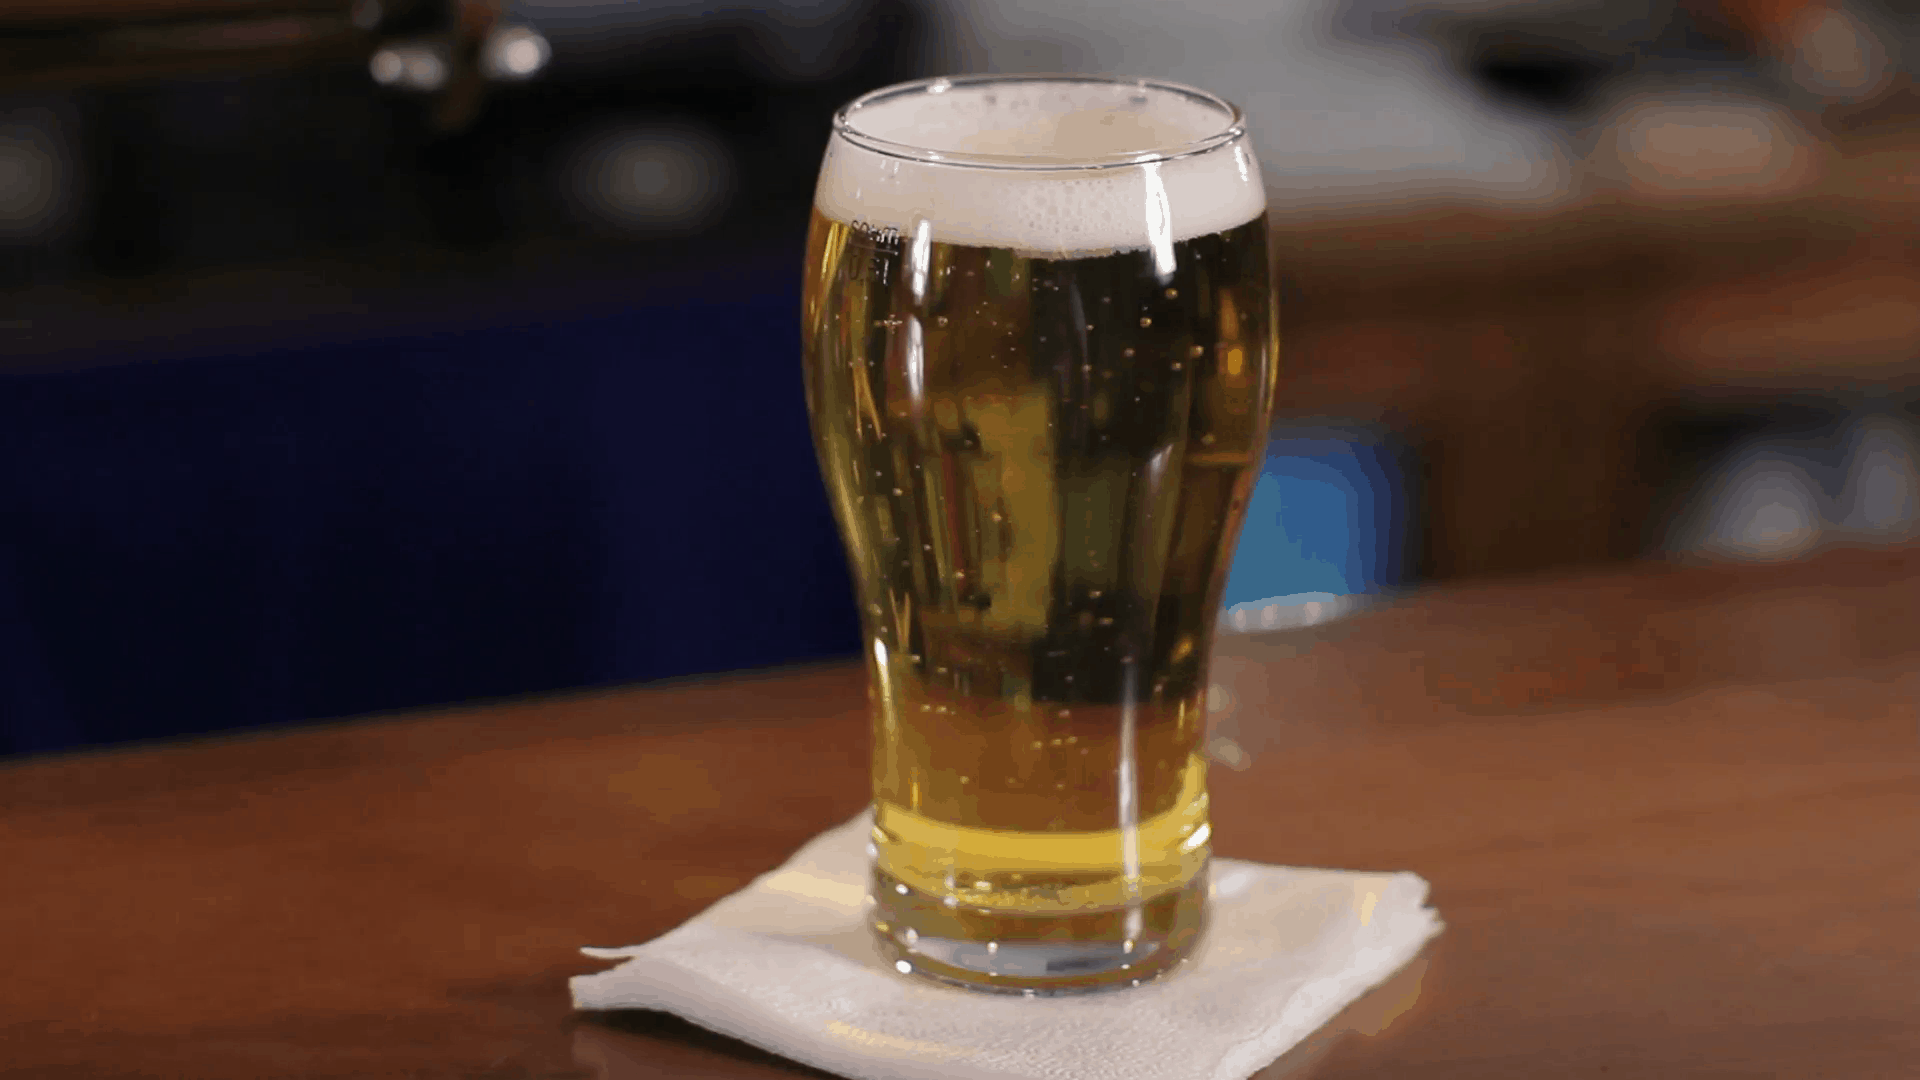 glass-of-beer-on-wooden-bar-counter-close-up-shot_sunpes8v__F0000